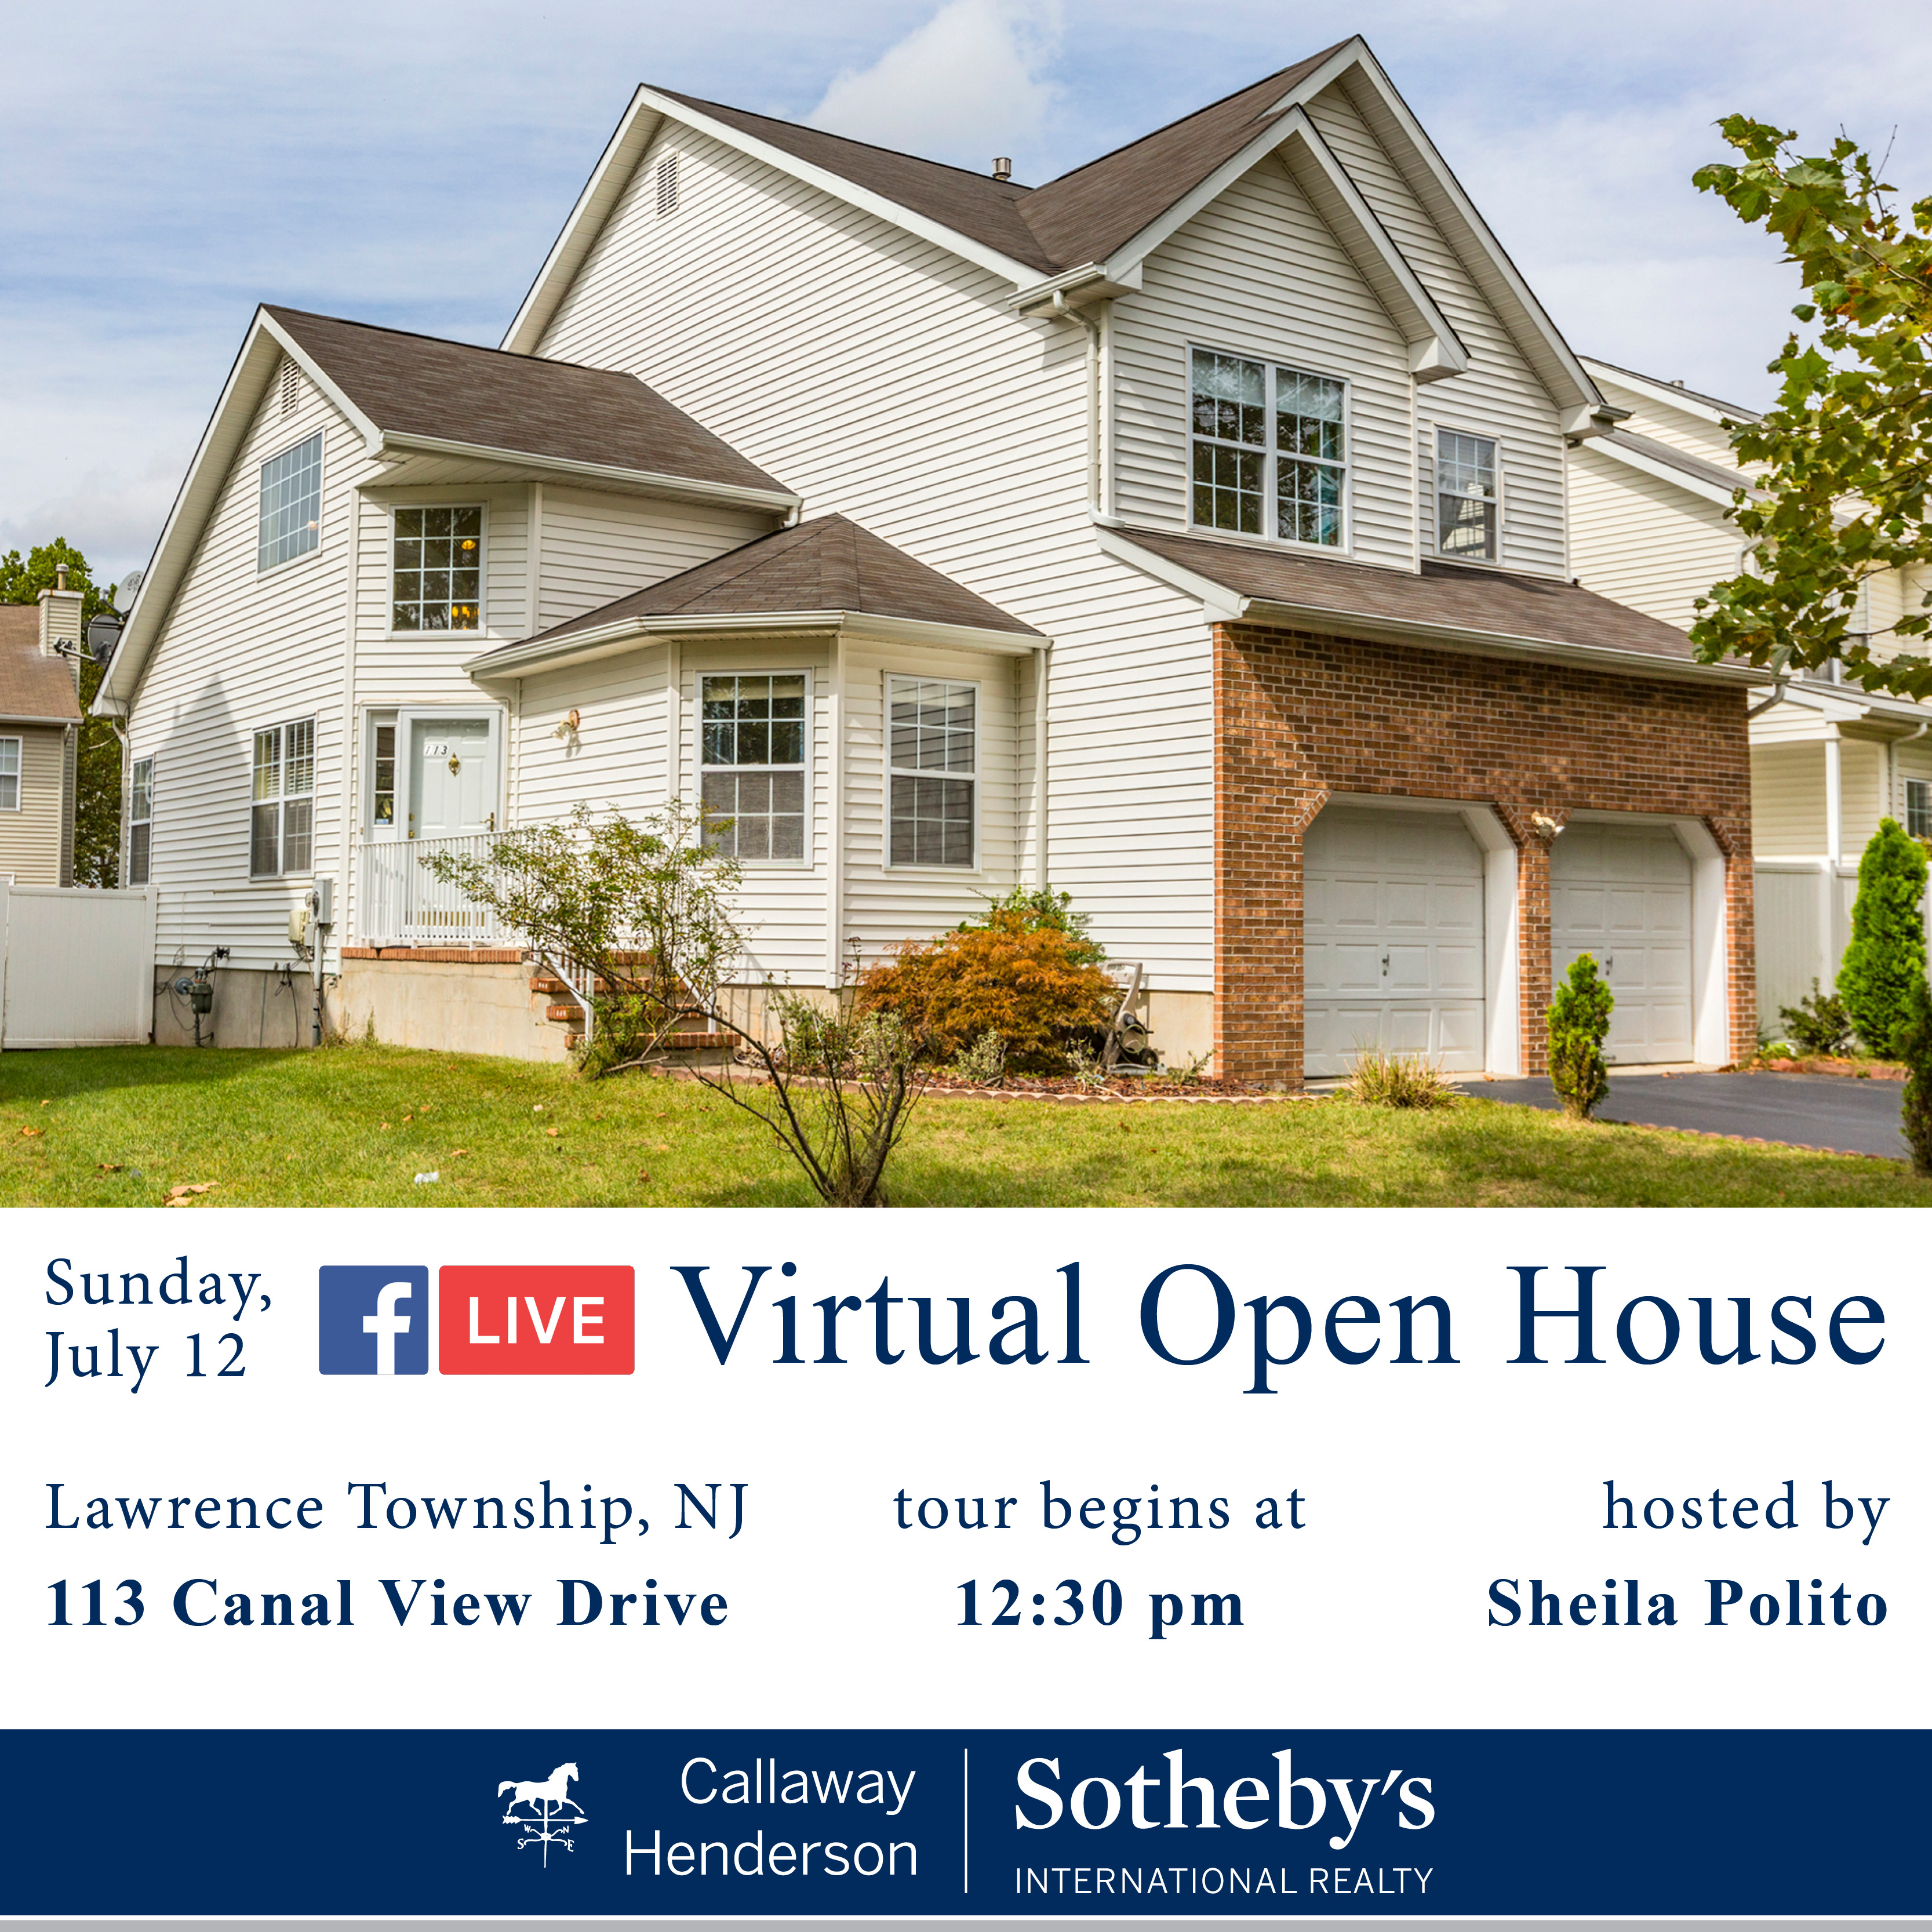 071220 Live Virtual Open House Template-Canal View Drive 113